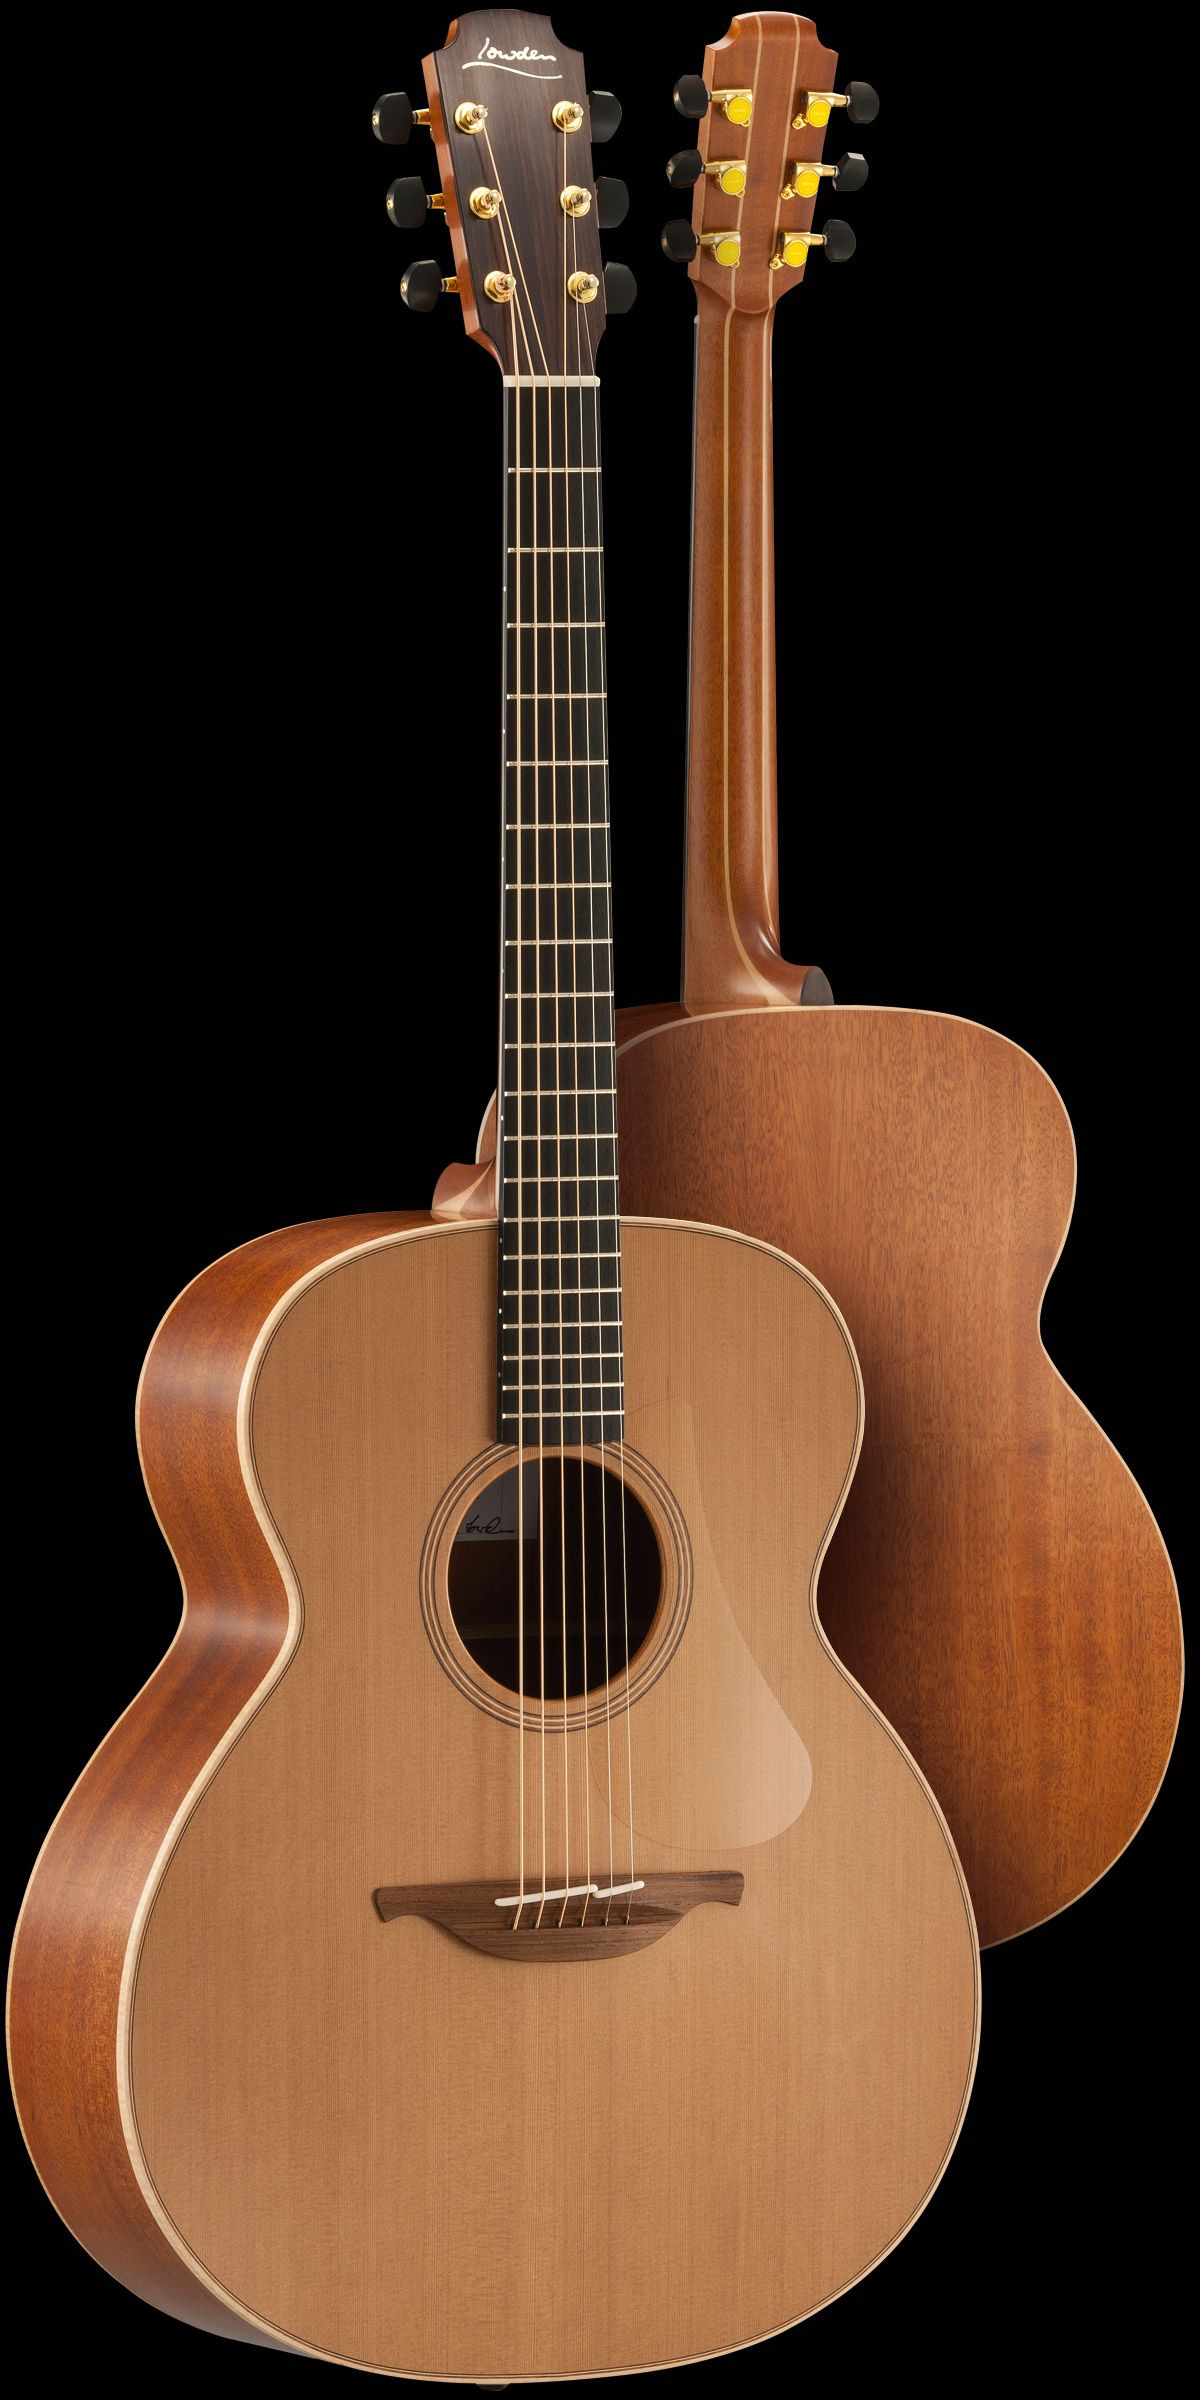 The Original Series Lowden Guitars Handmade And Hand Built Acoustic Guitar Range From Downpatrick Ireland Acoustic Guitar Guitar Acoustic